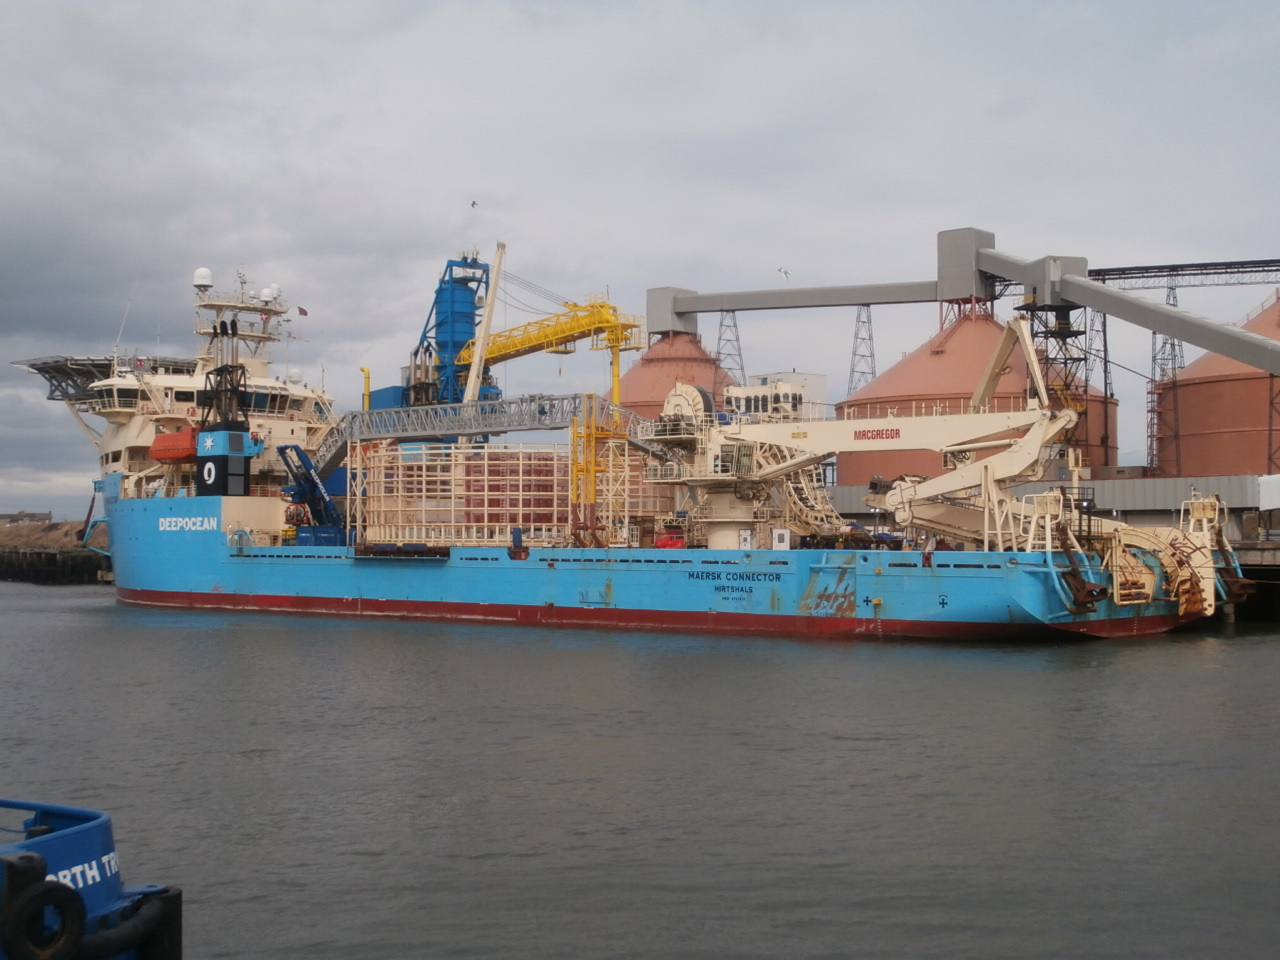 maersk connector.JPG